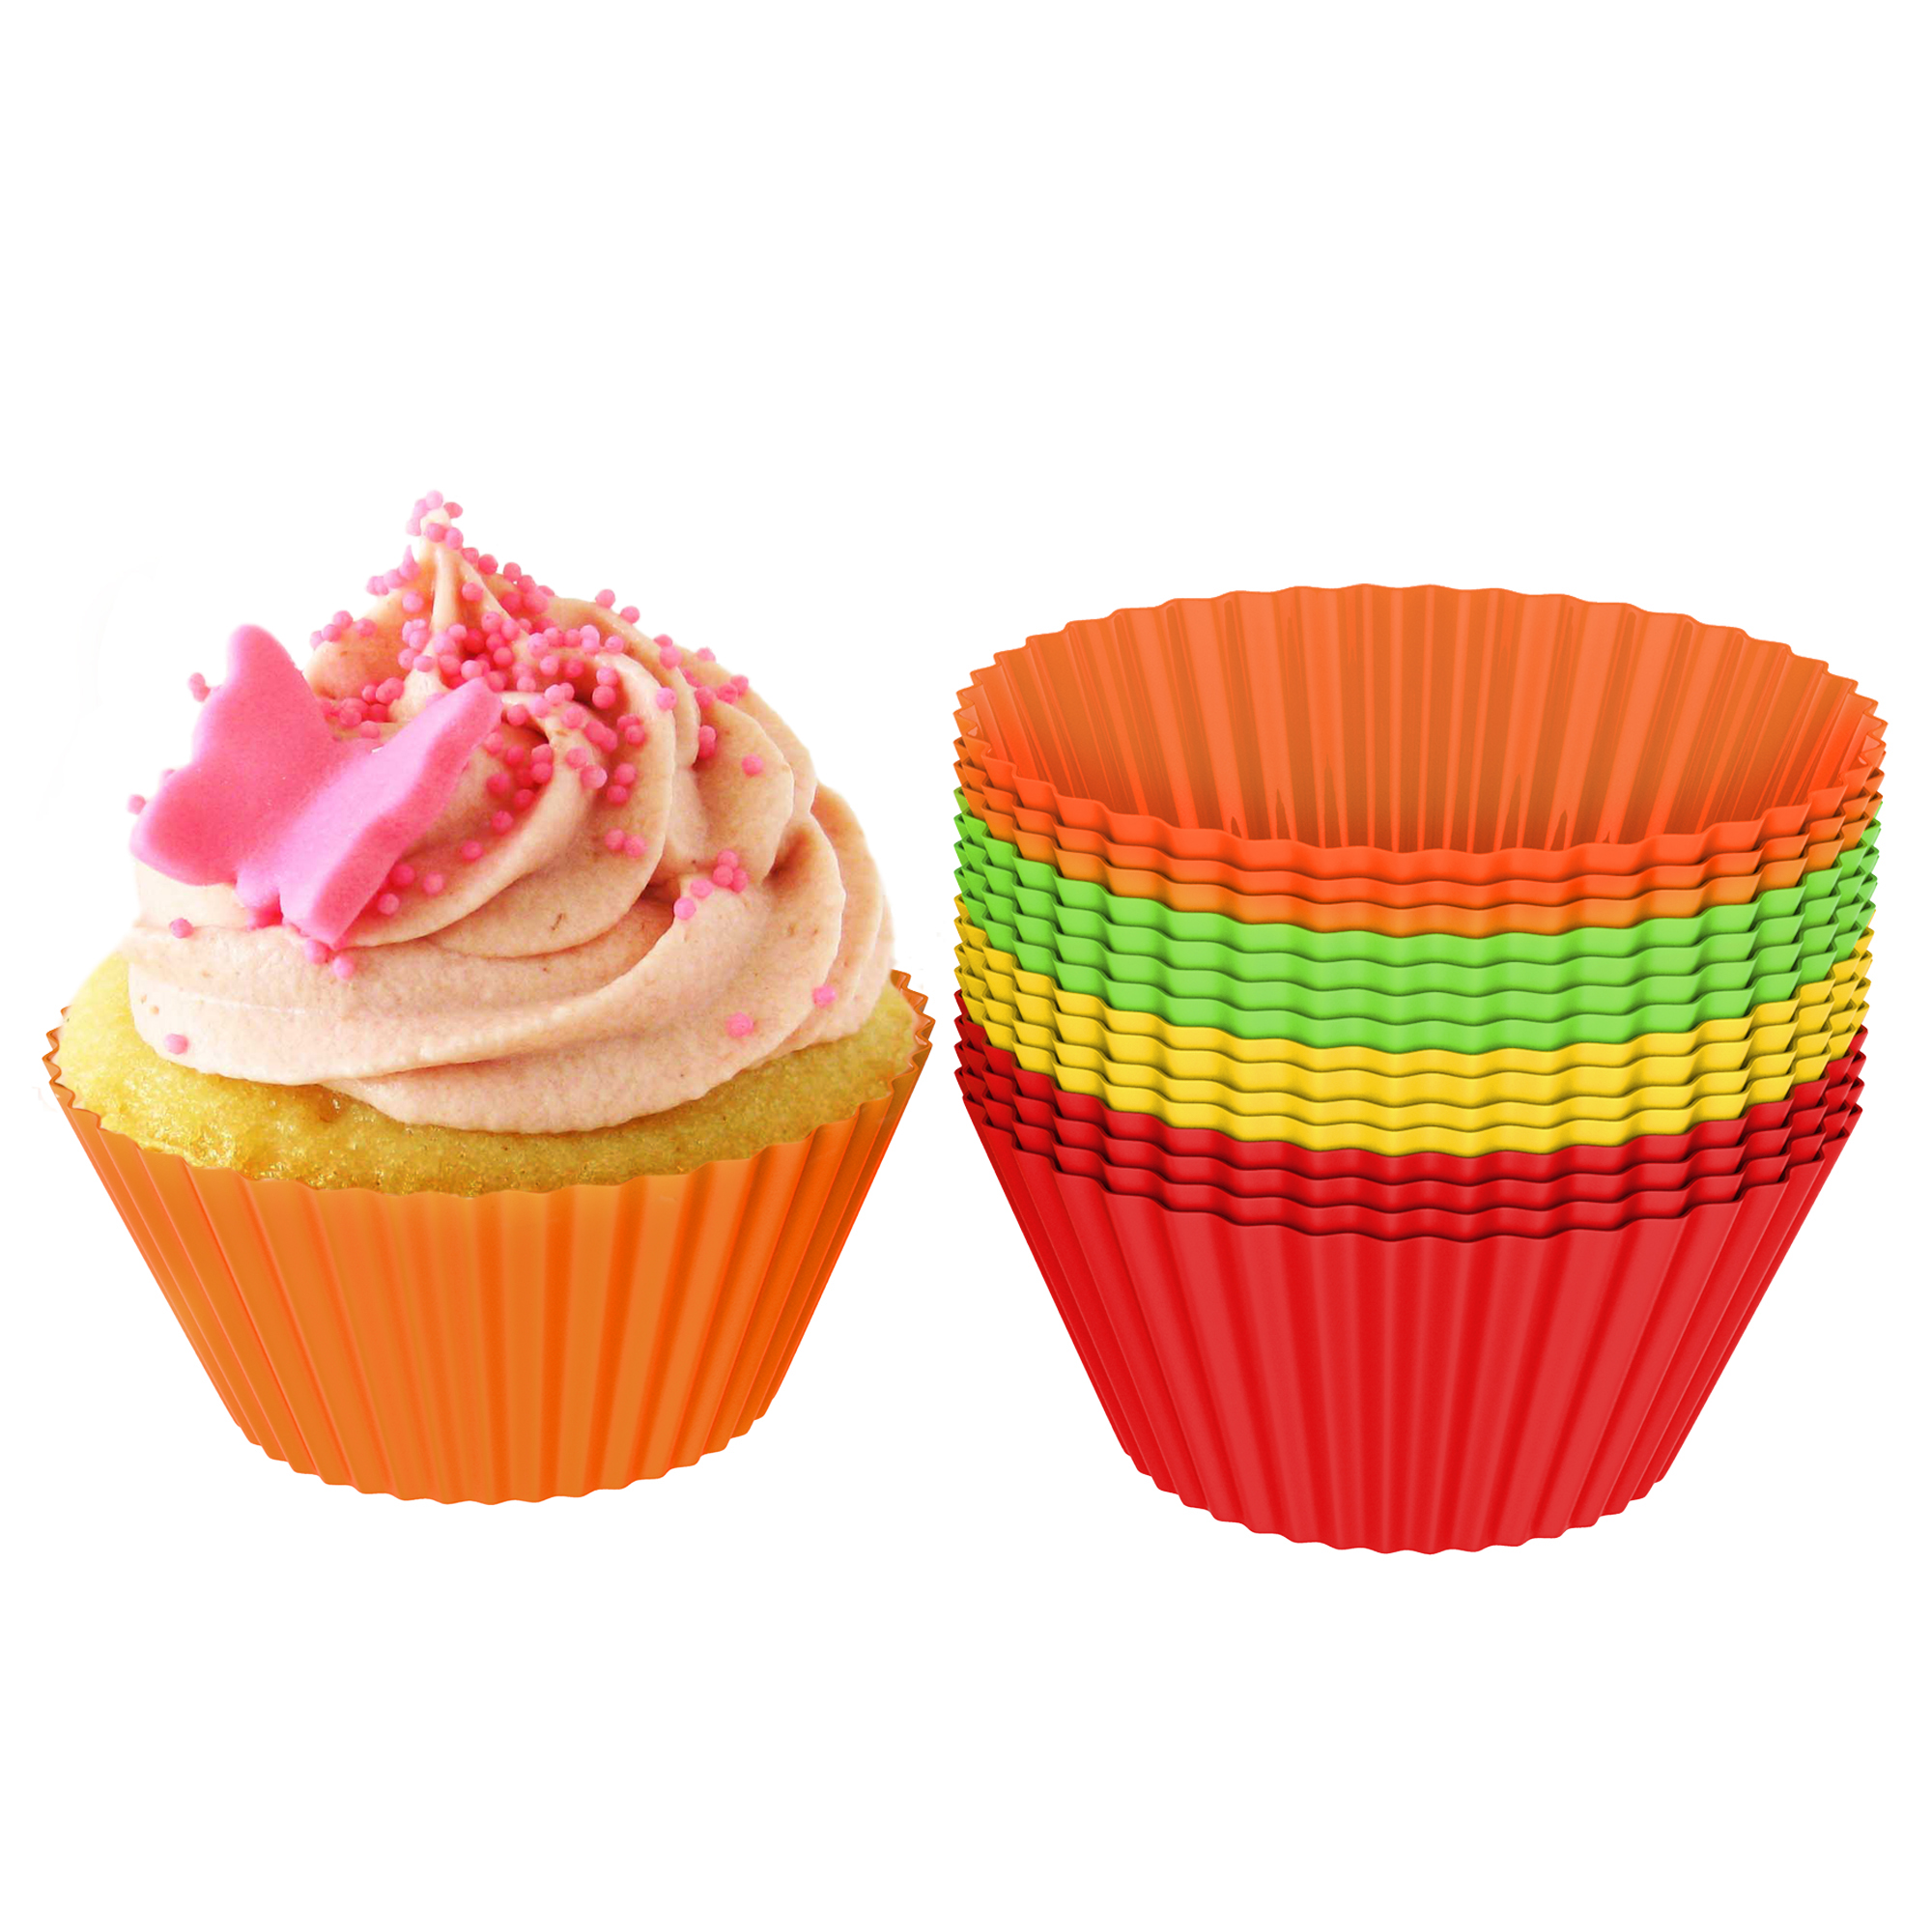 Party FANCYLEO EU 100PCS Large Cupcake Liners Paper Round Cake Baking Cups Muffin Cases for Wedding Birthday White